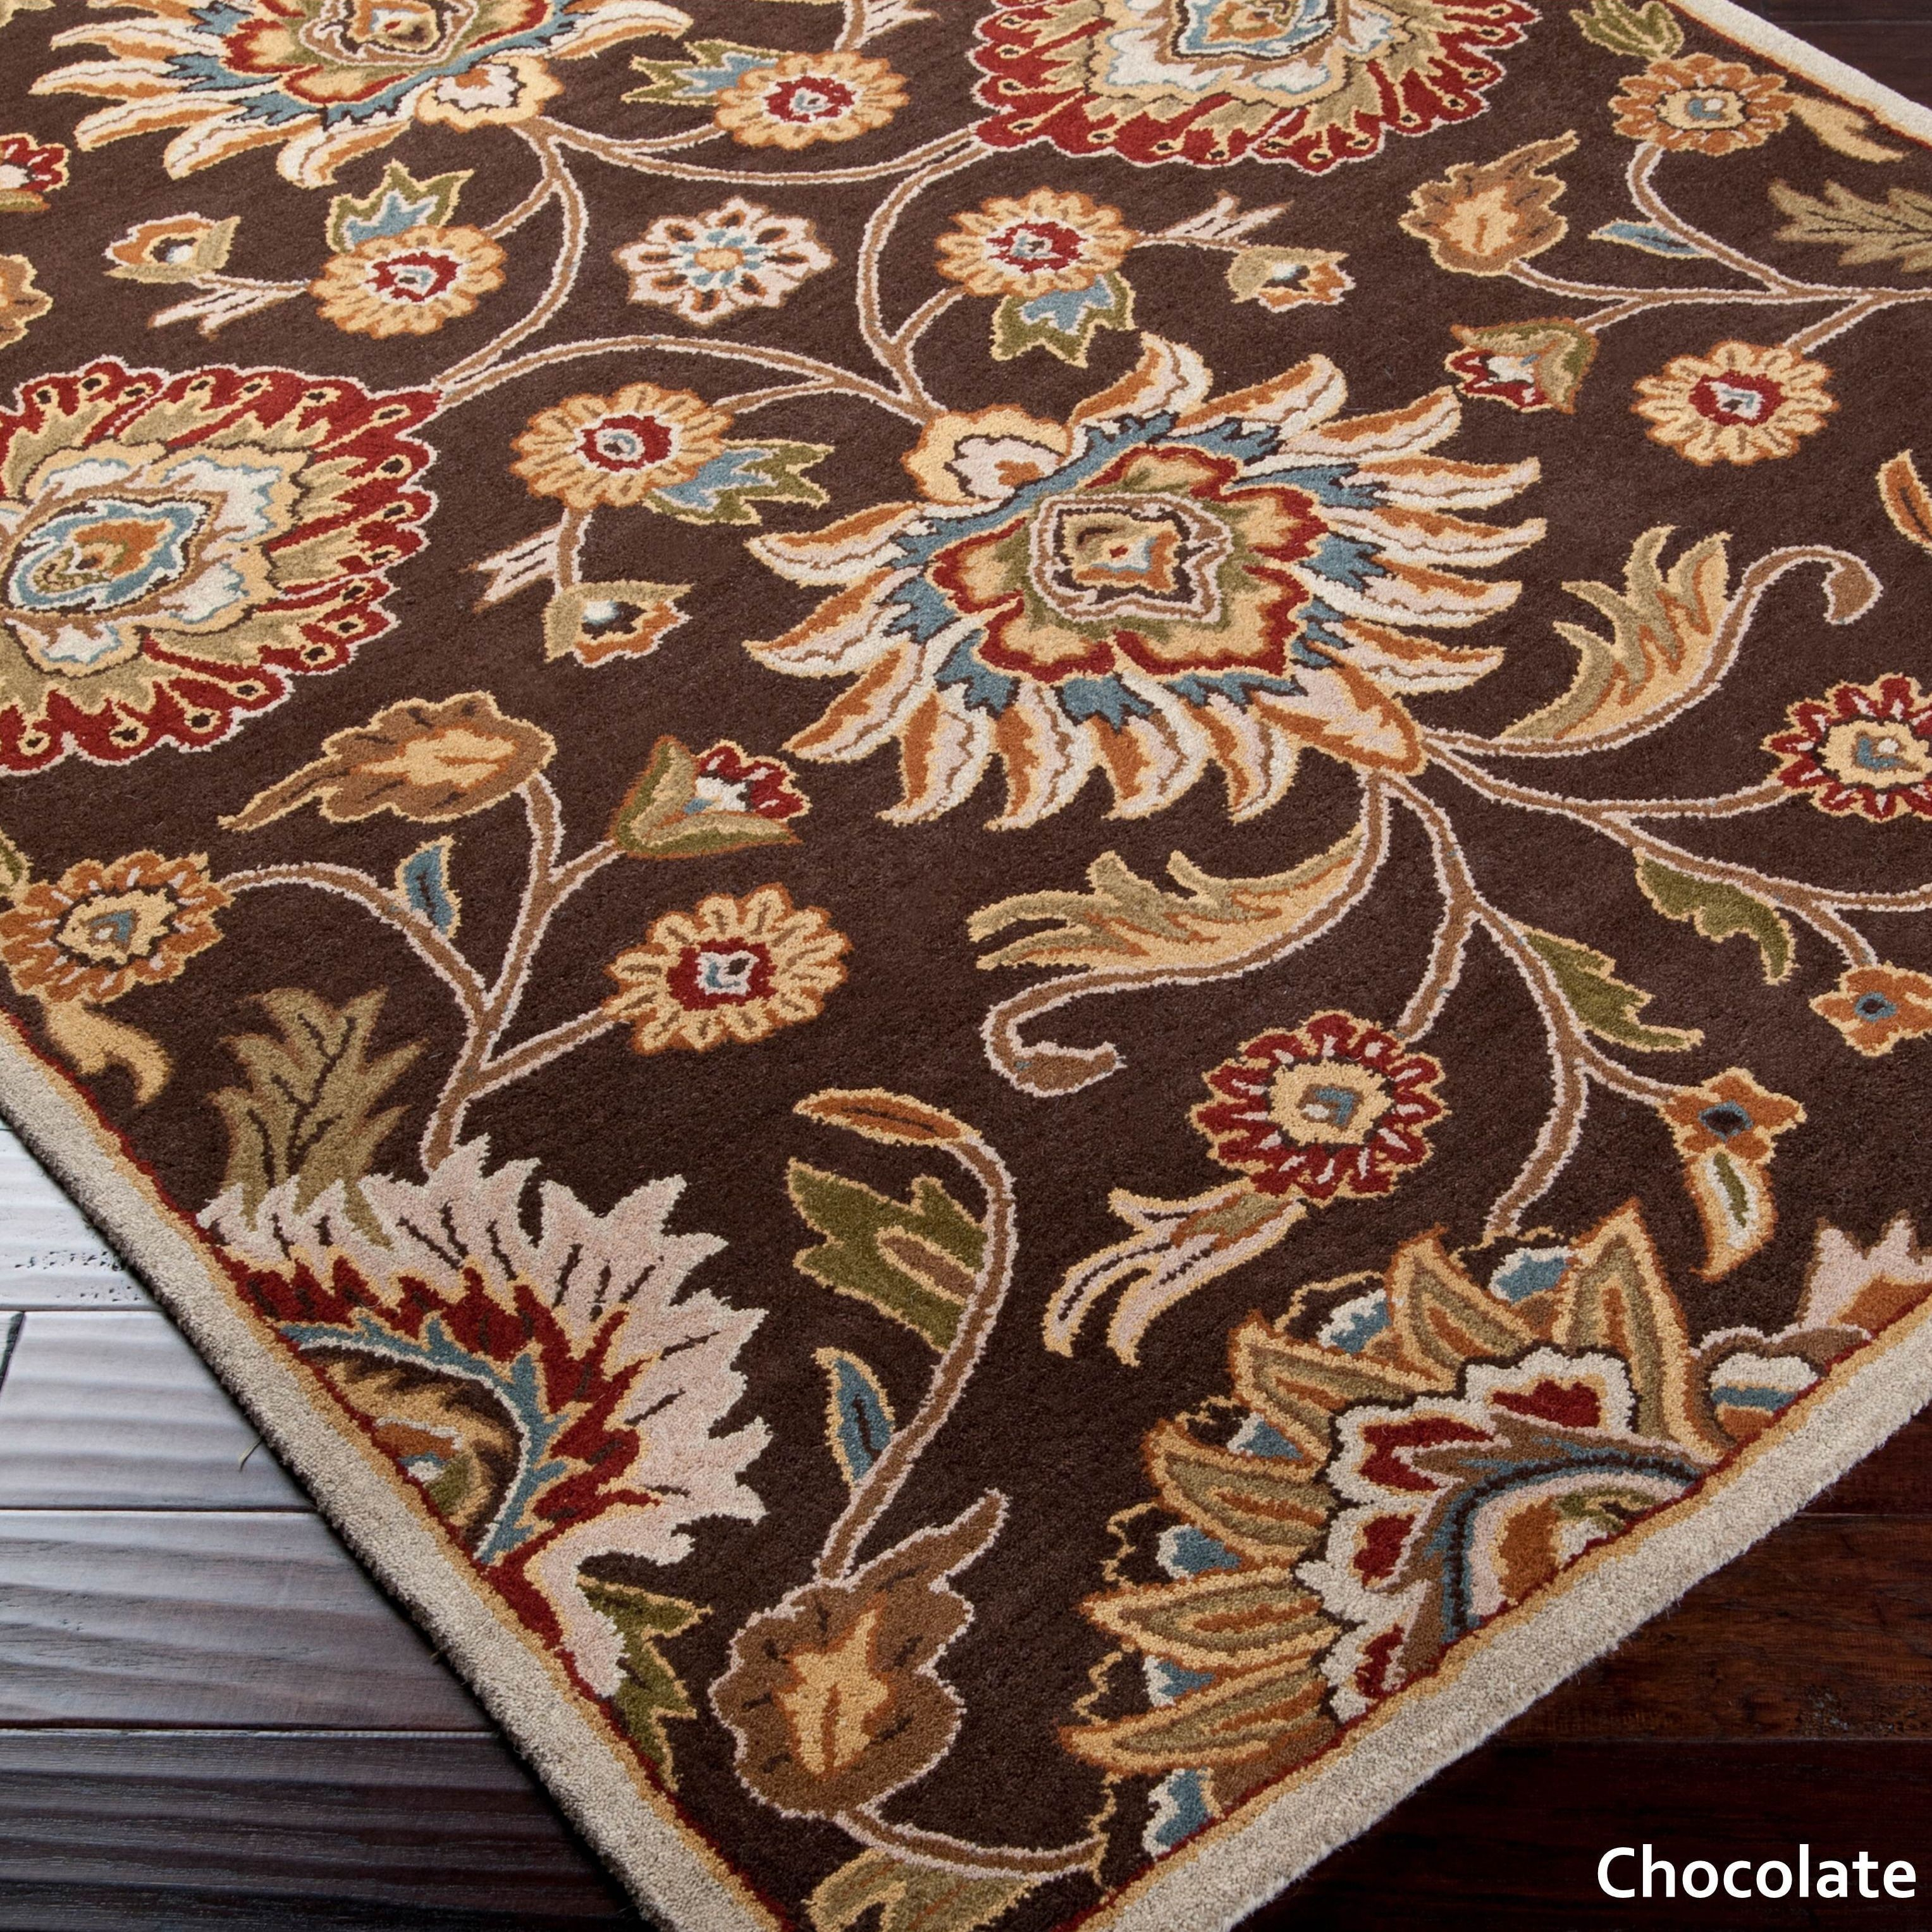 Patchway Hand Tufted Paisley Wool Area Rug 4 X 6 Chocolate Brown Chocolate Brown Wool Area Rugs Hand Tufted Rugs Area Rugs